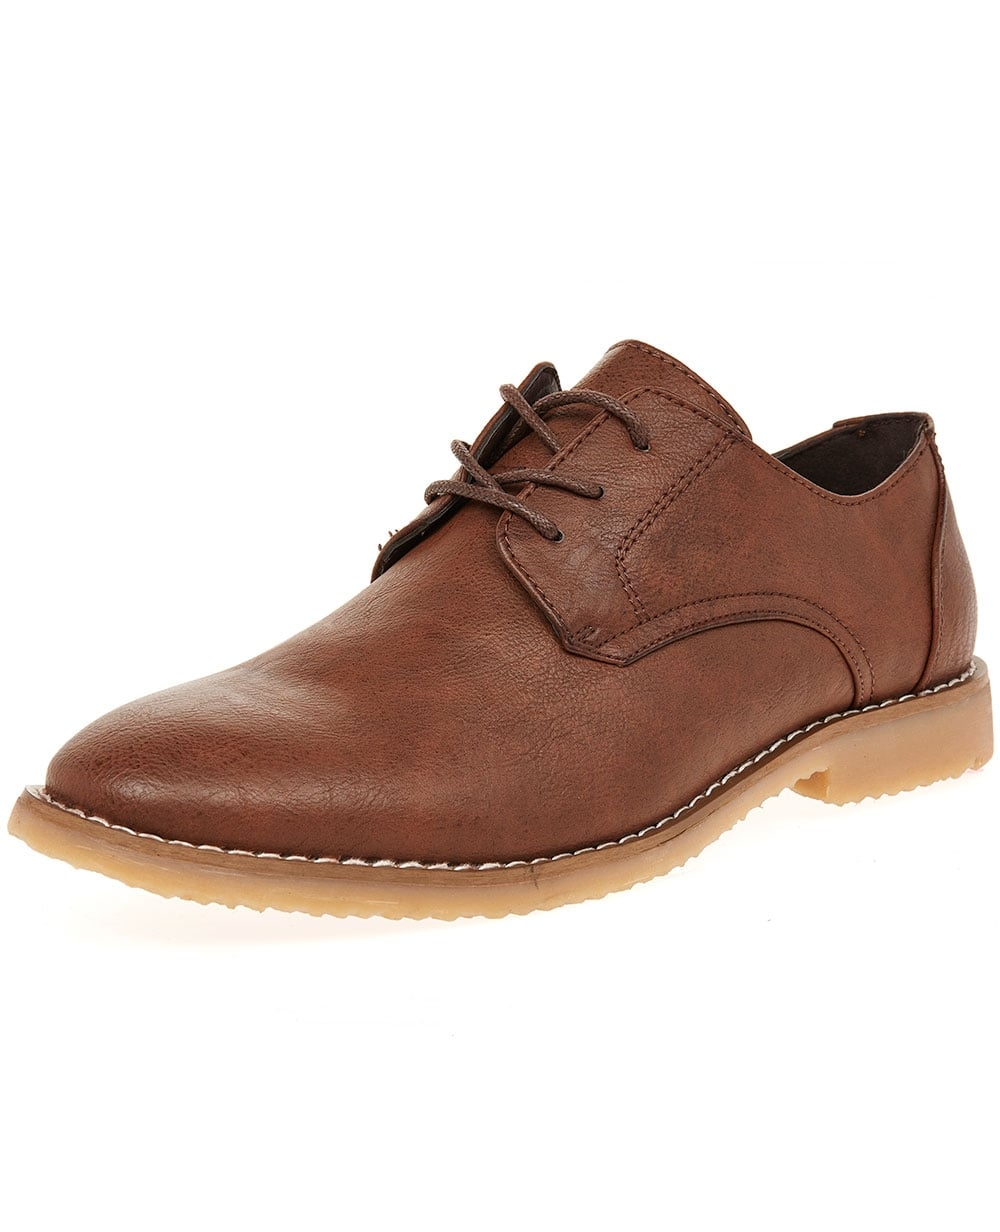 branded shoes mens brown suede finish gibson lace up